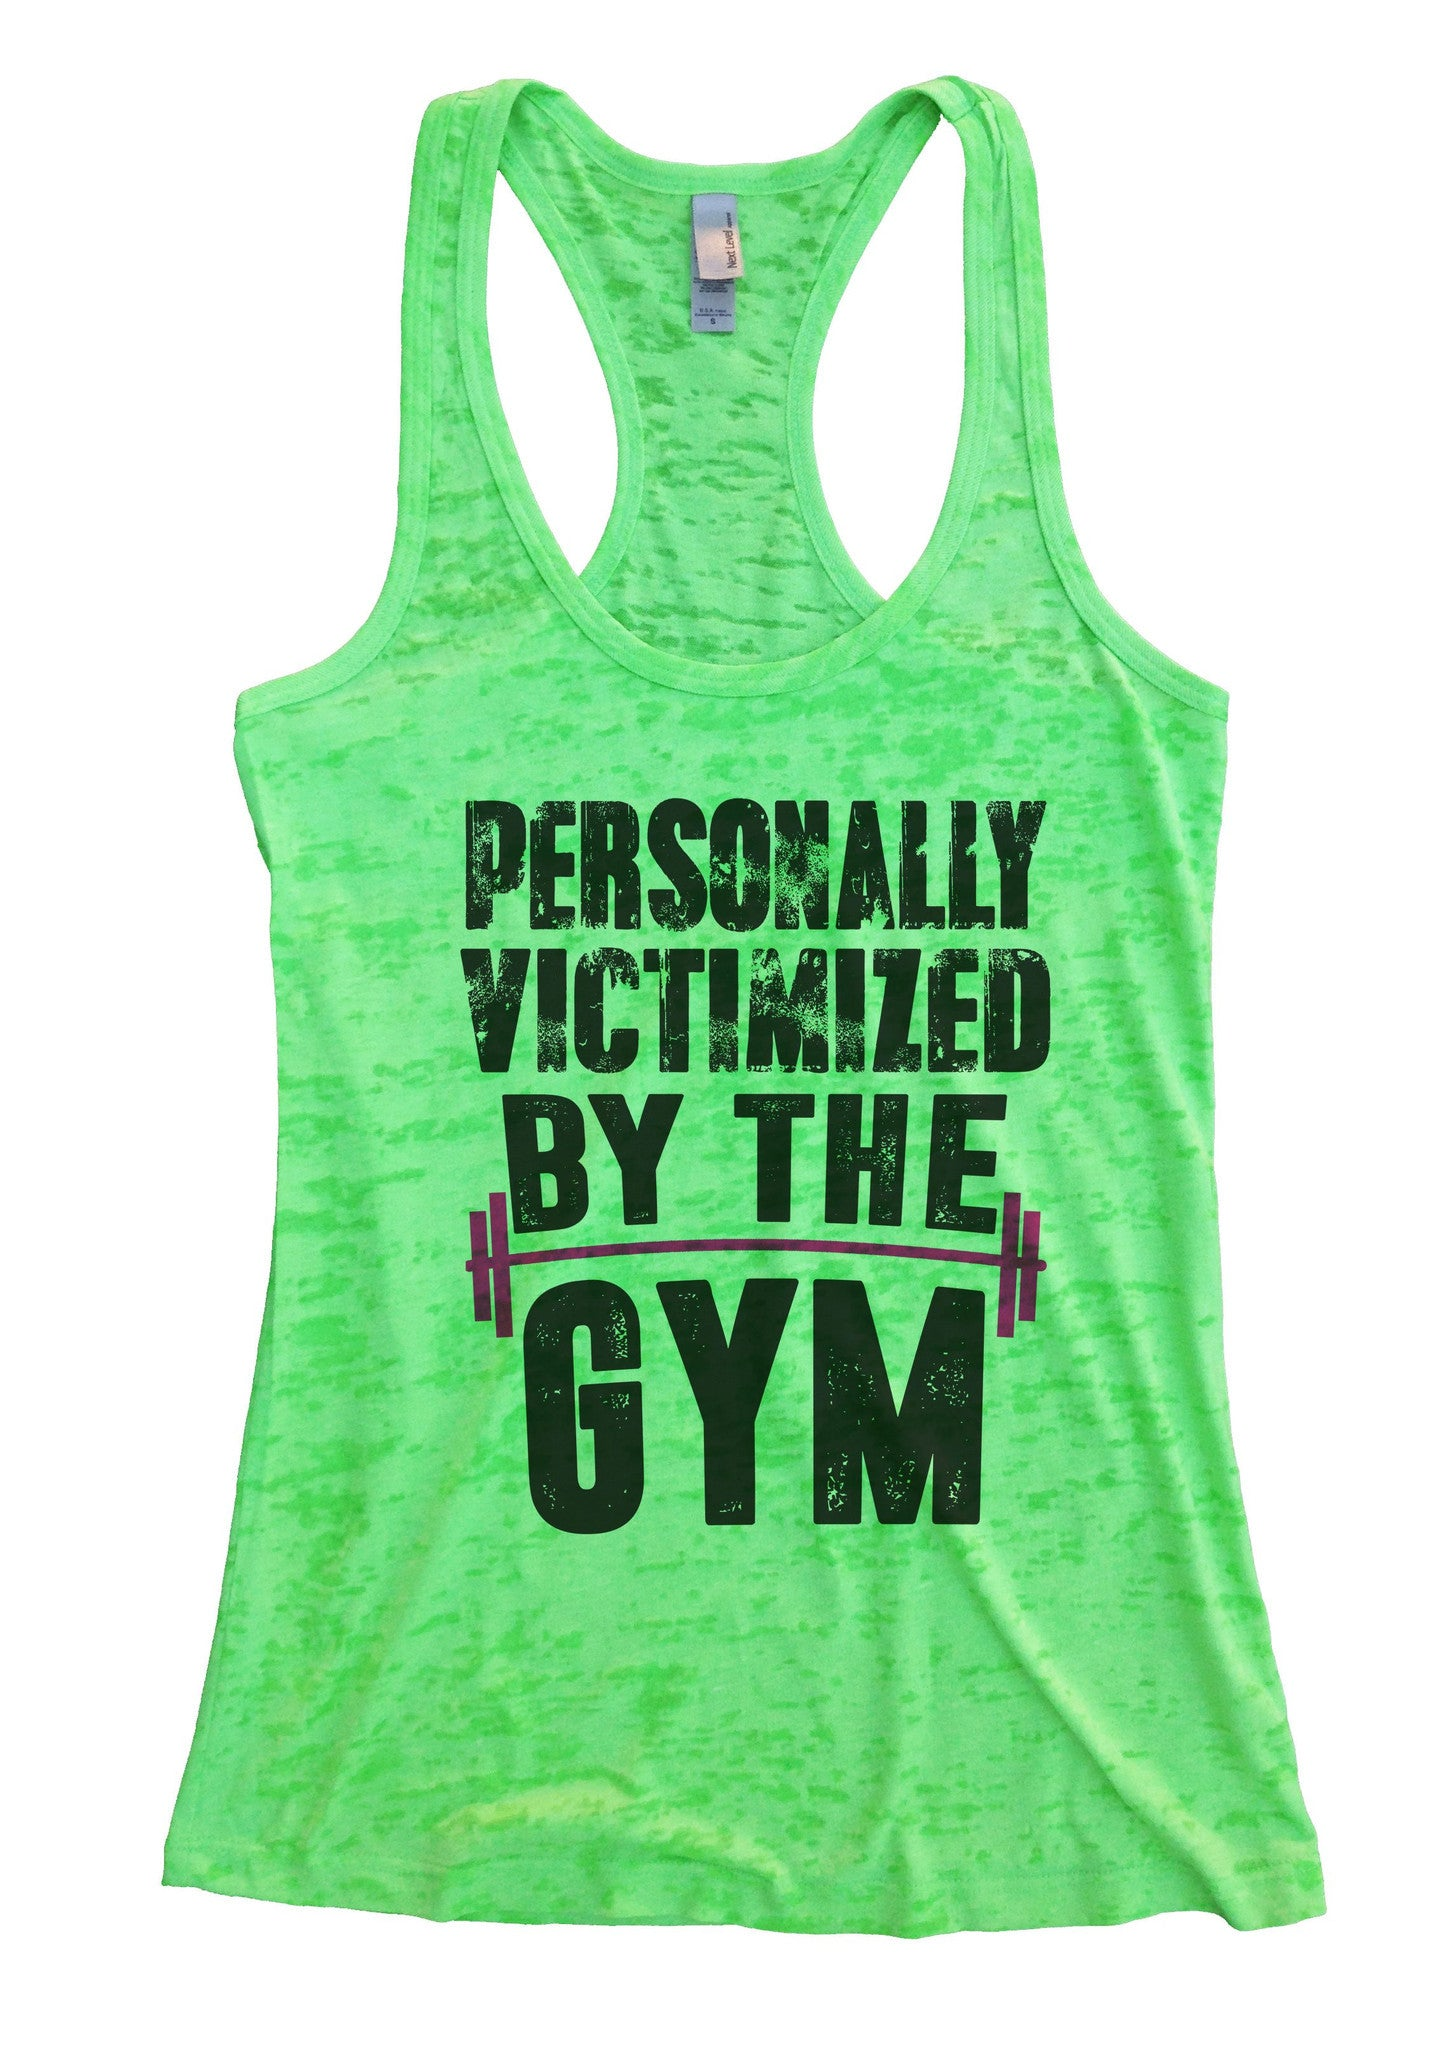 Personally Victimized By The Gym Burnout Tank Top By BurnoutTankTops.com - 1109 - Funny Shirts Tank Tops Burnouts and Triblends  - 2